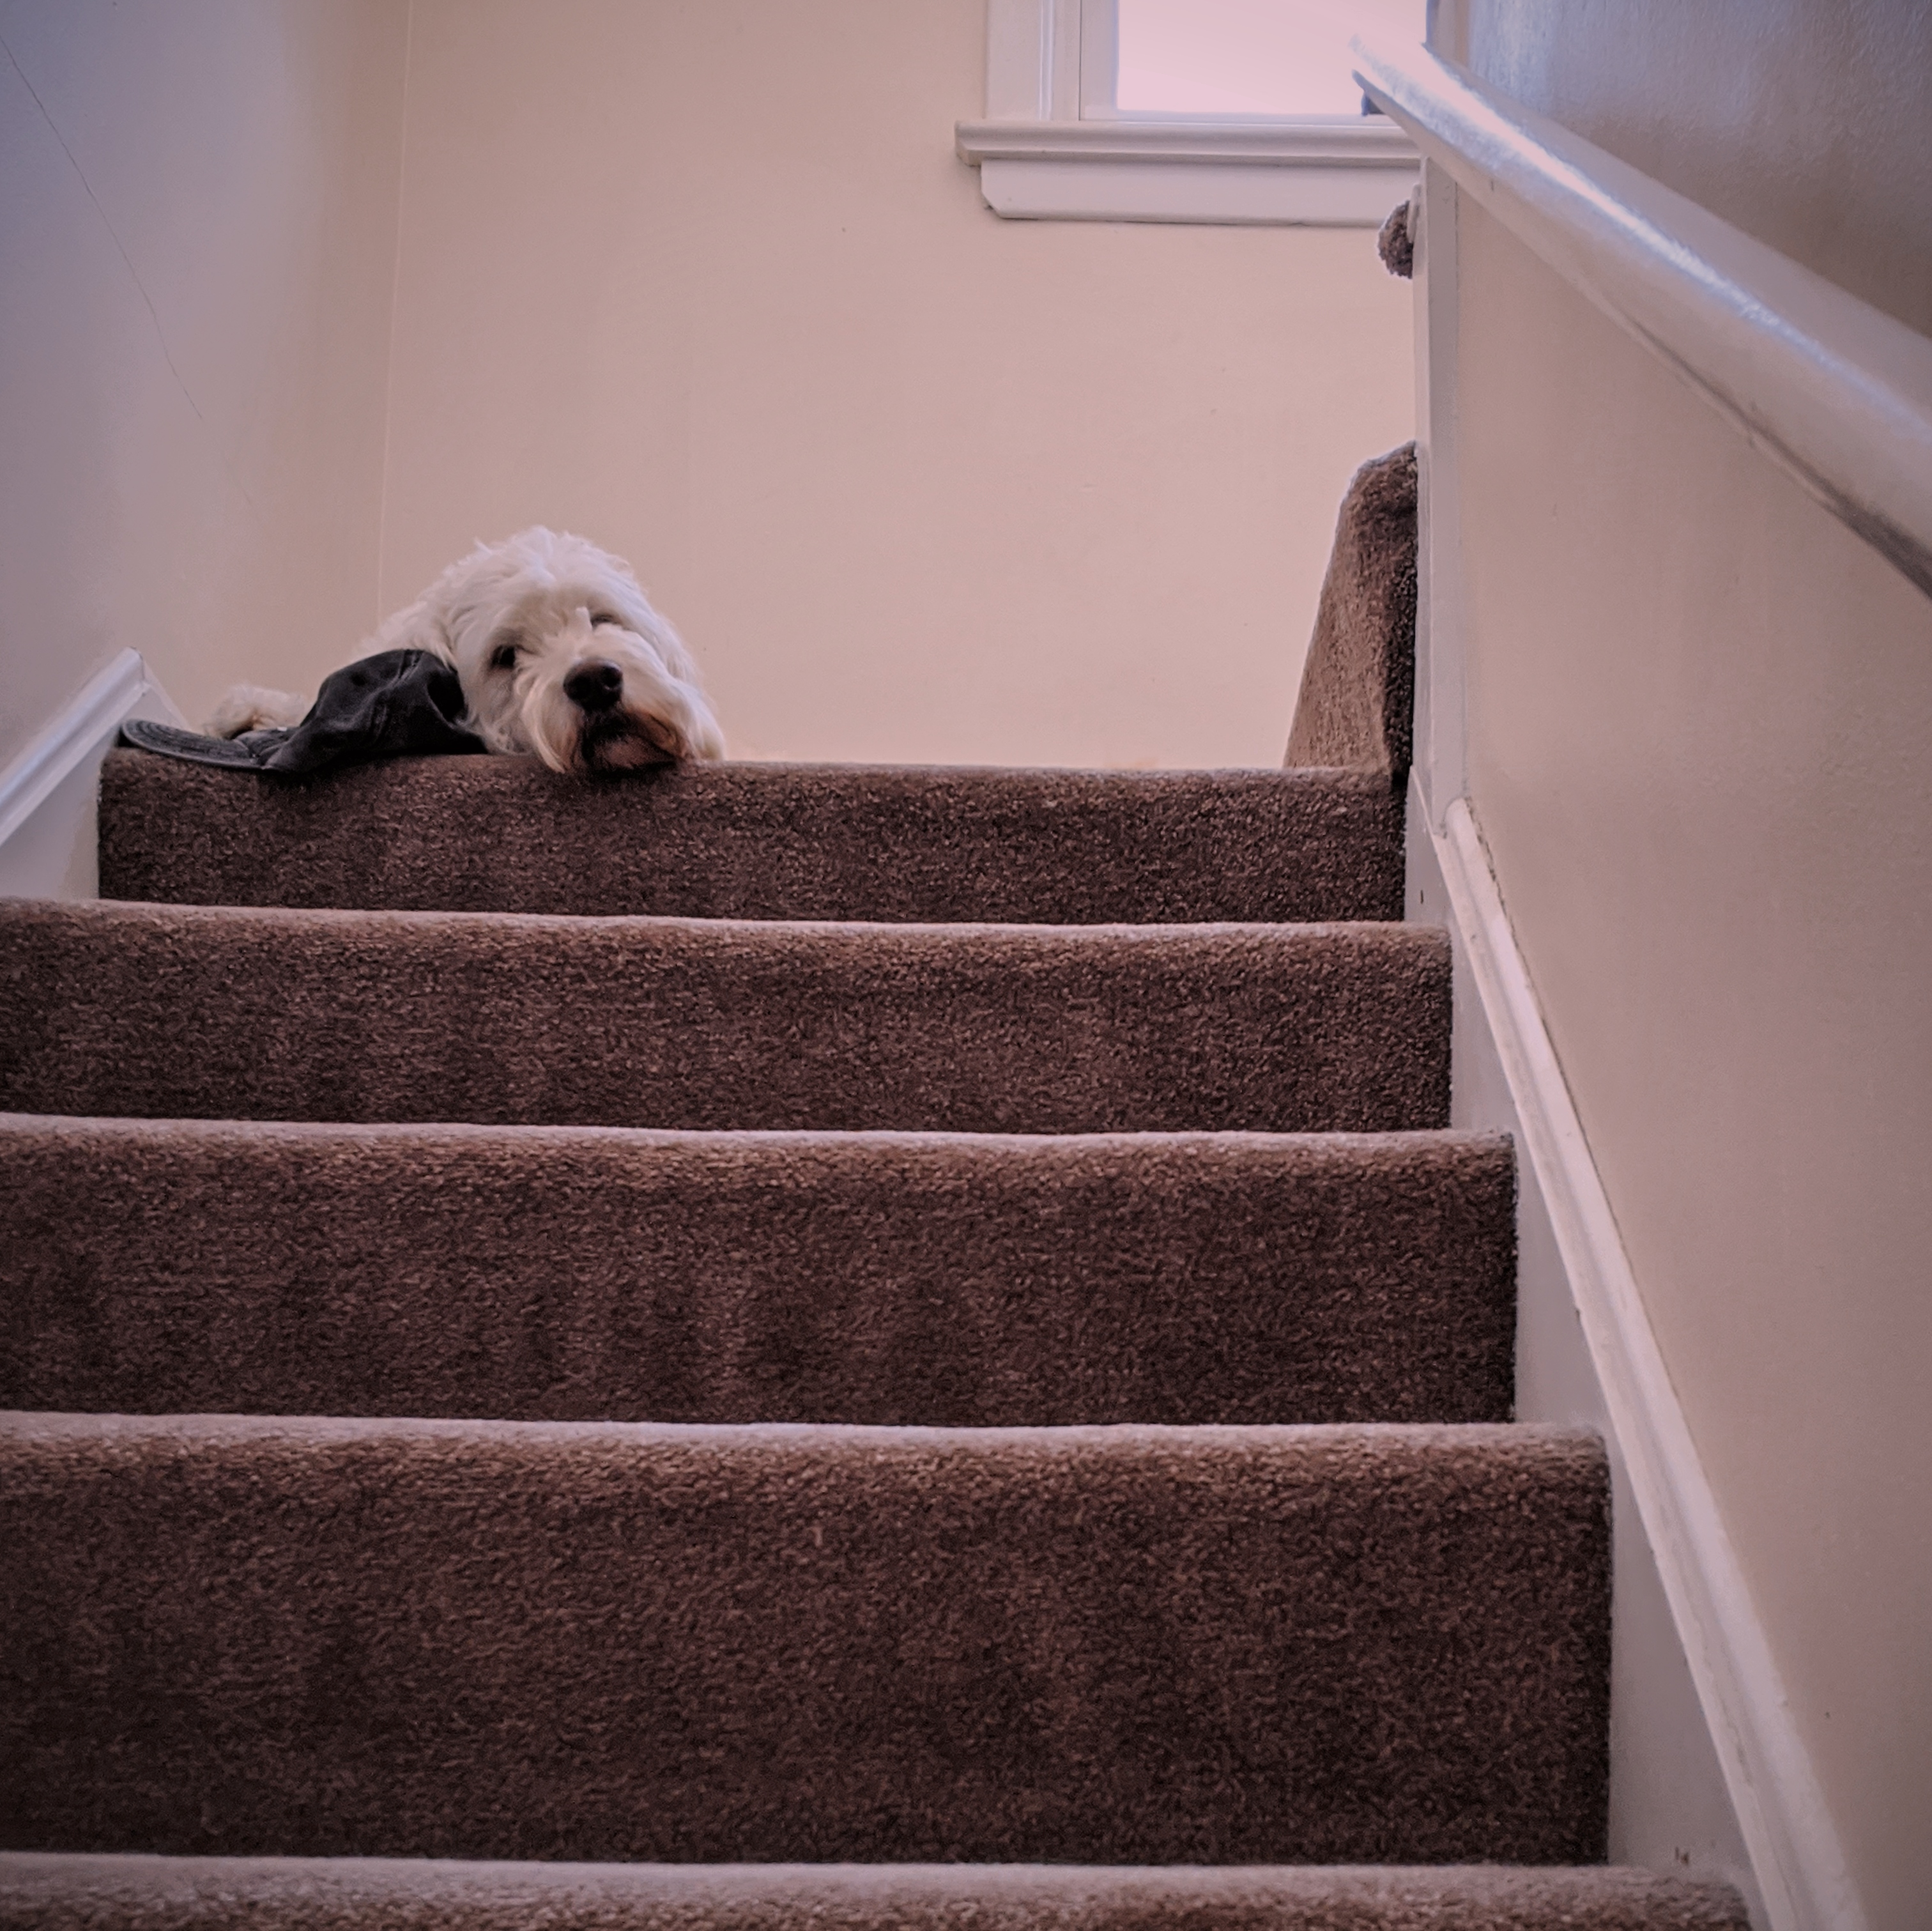 Dog looking down from top stair